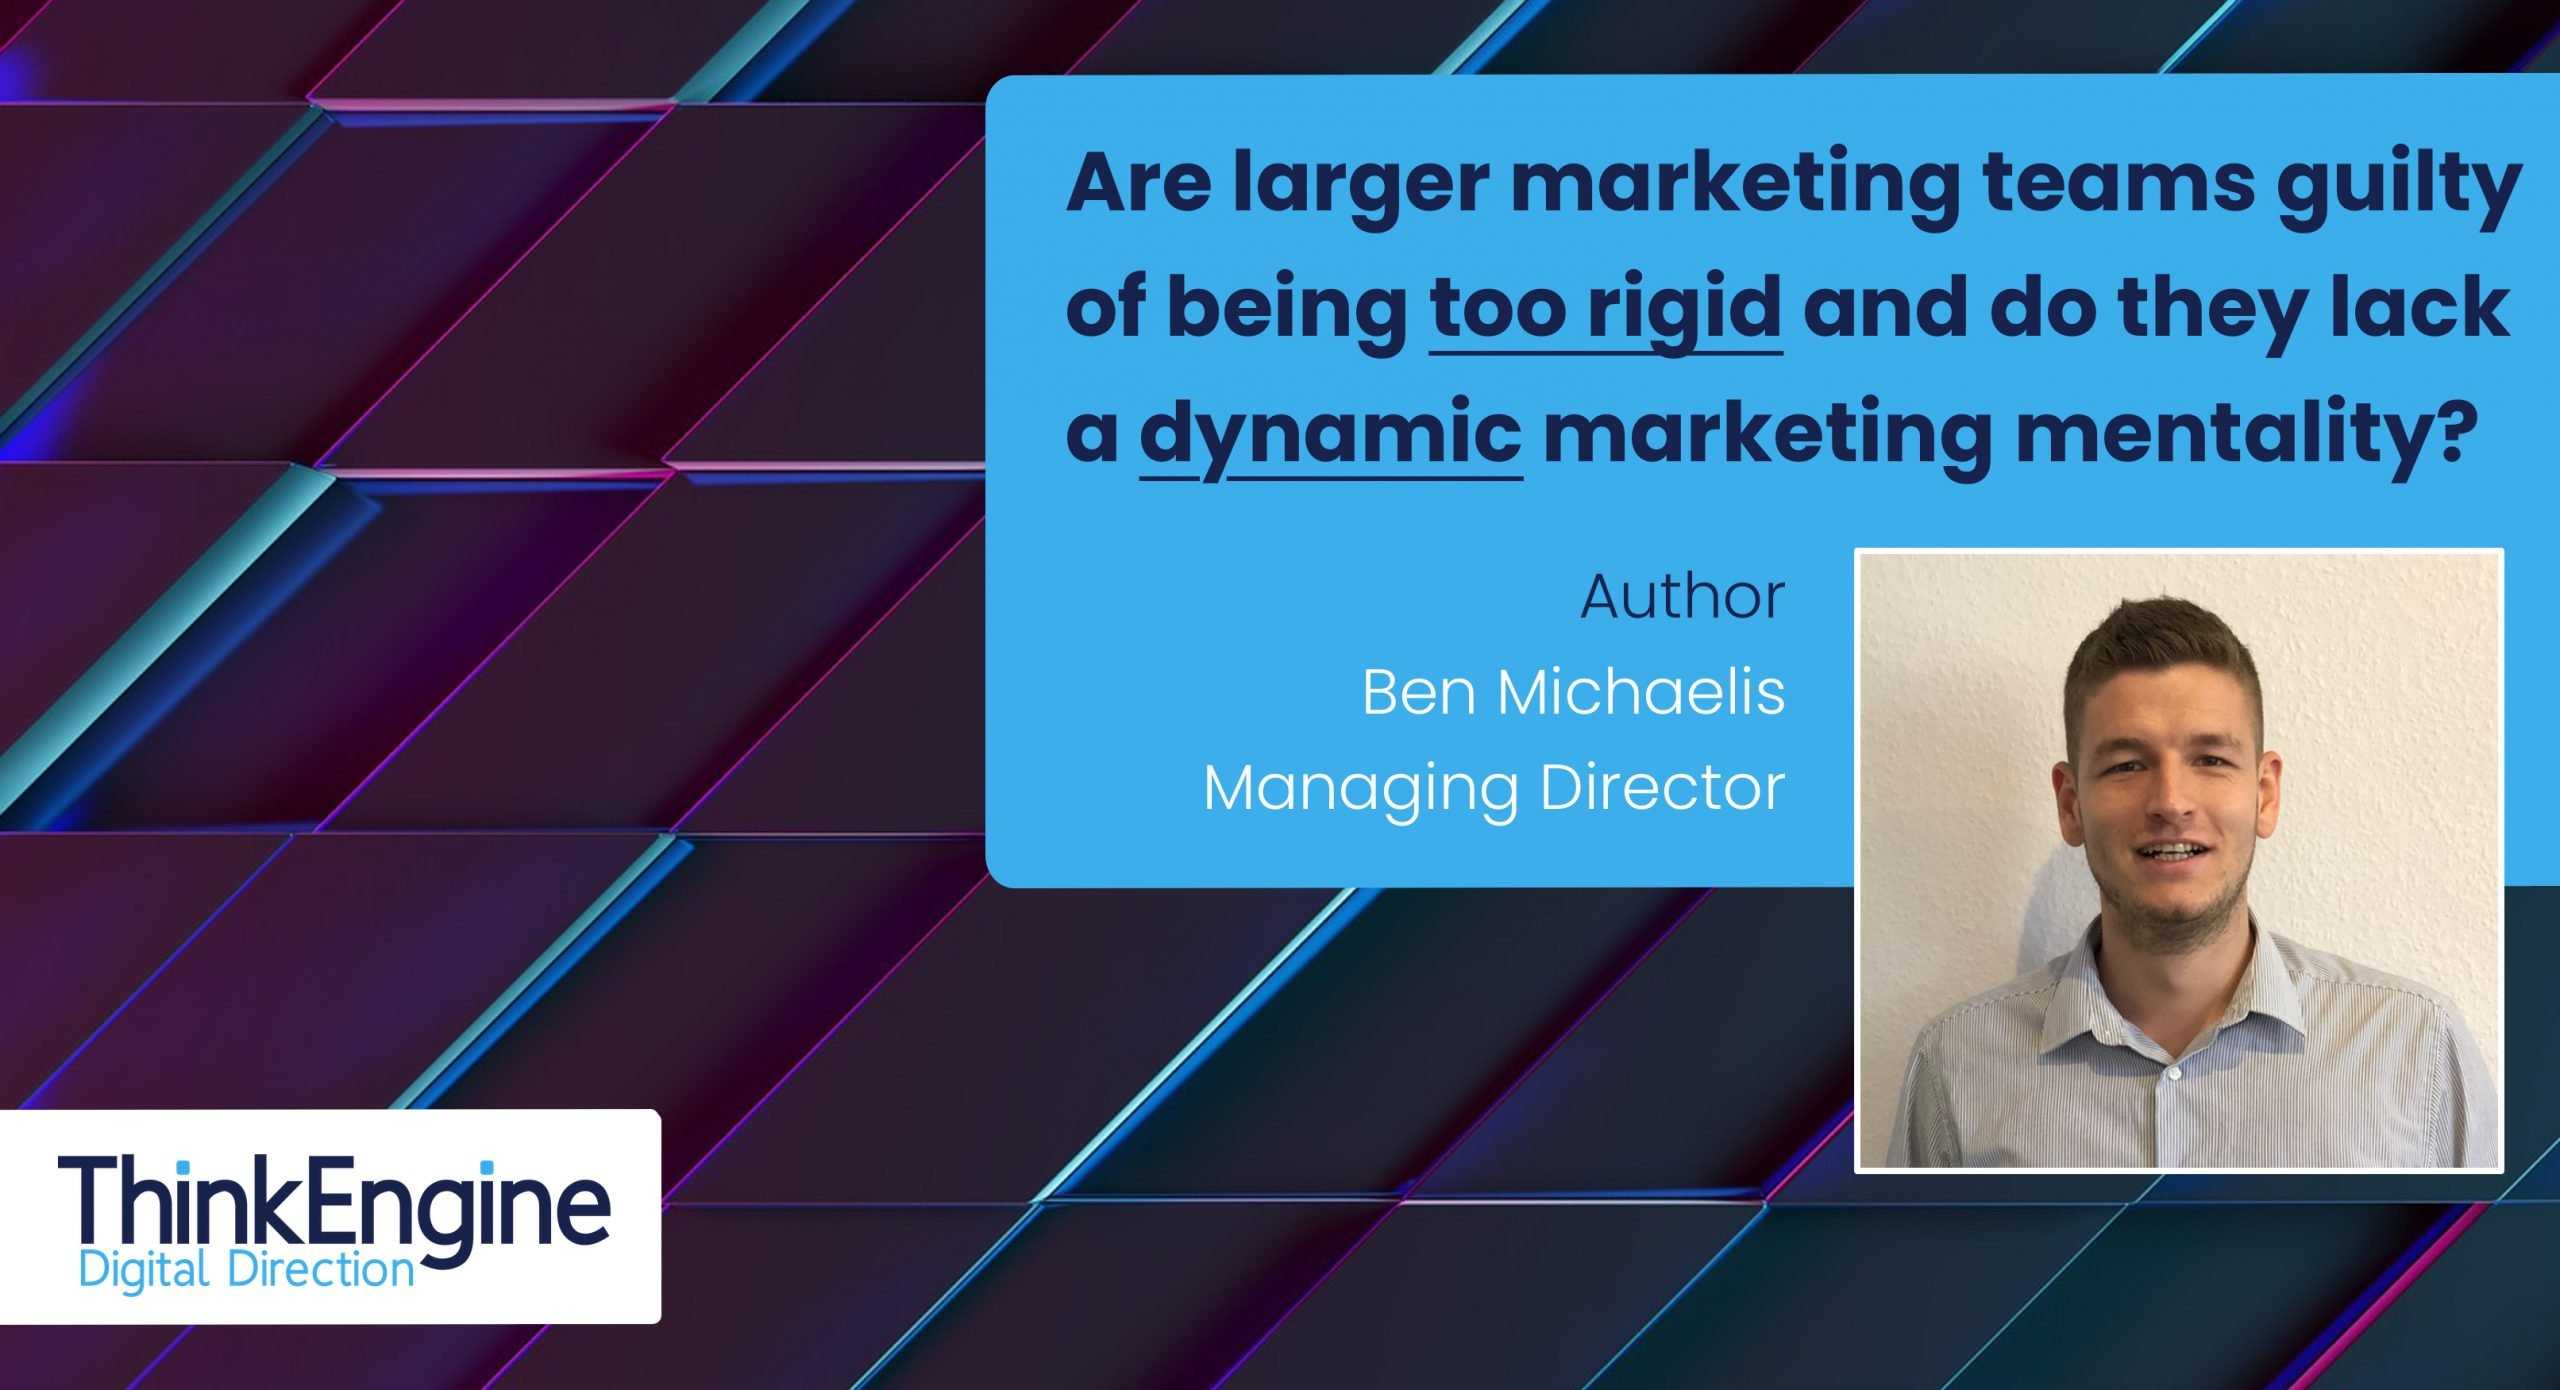 New ThinkEngine Blog Article on Marketing Mentality - By Ben Michaelis